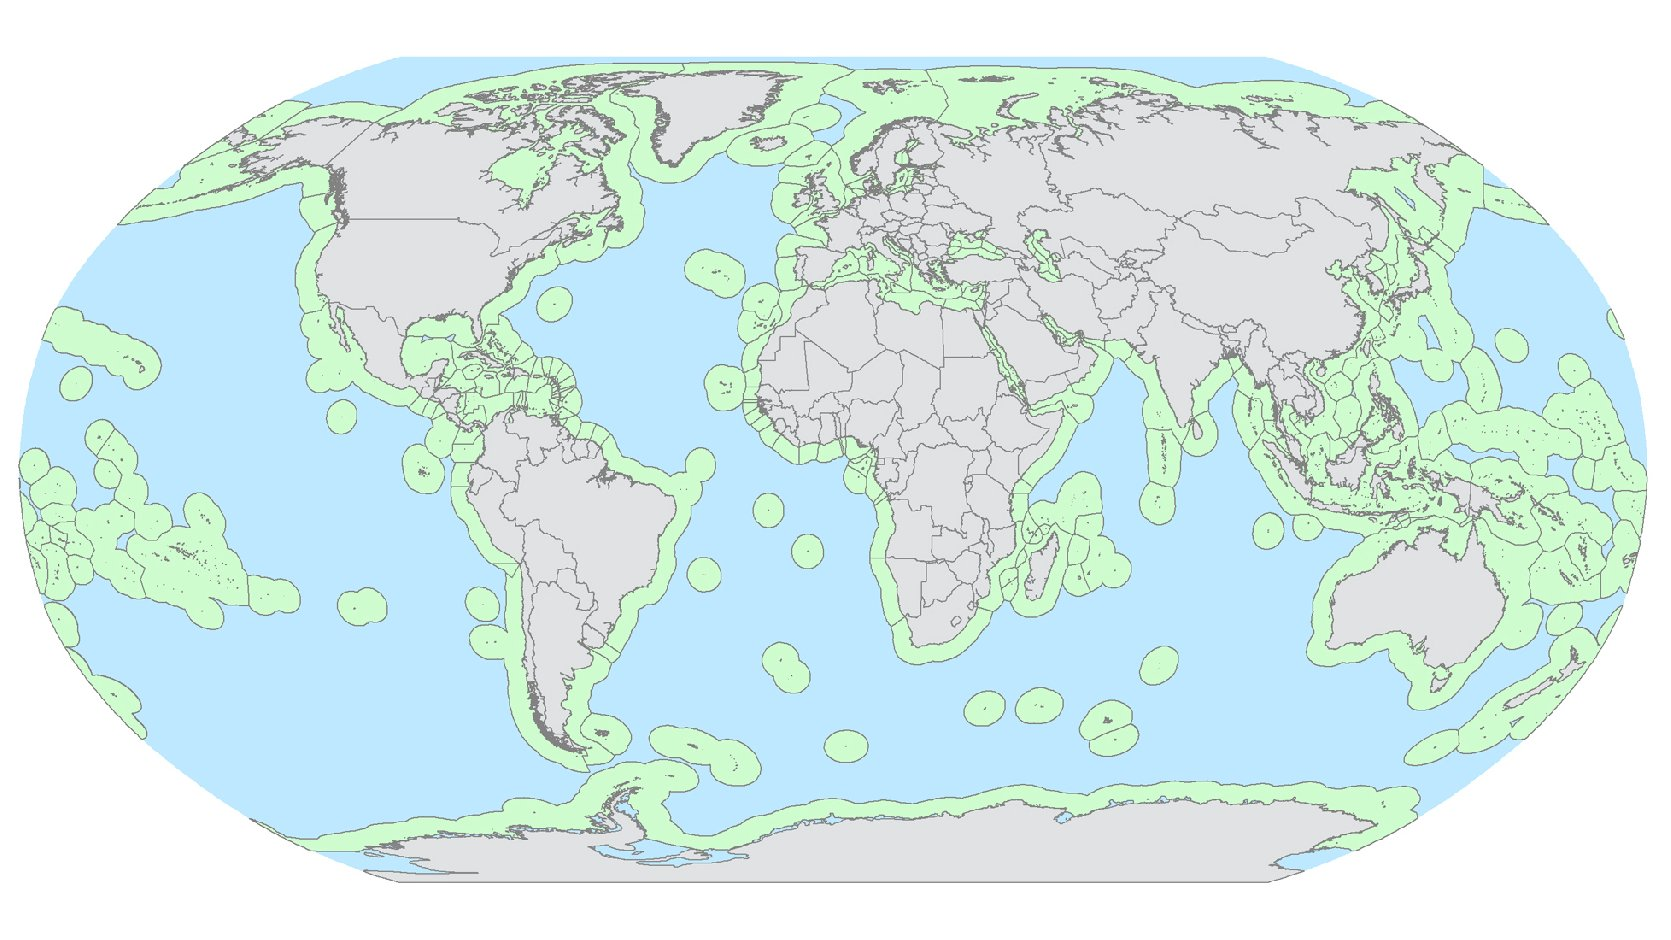 A global map of exclusive economic zones (green), where fishing would be allowed, and high seas (blue), where fishing would be banned, under the proposal from researchers Crow White and Christopher Costello. Image: PLoS Biology